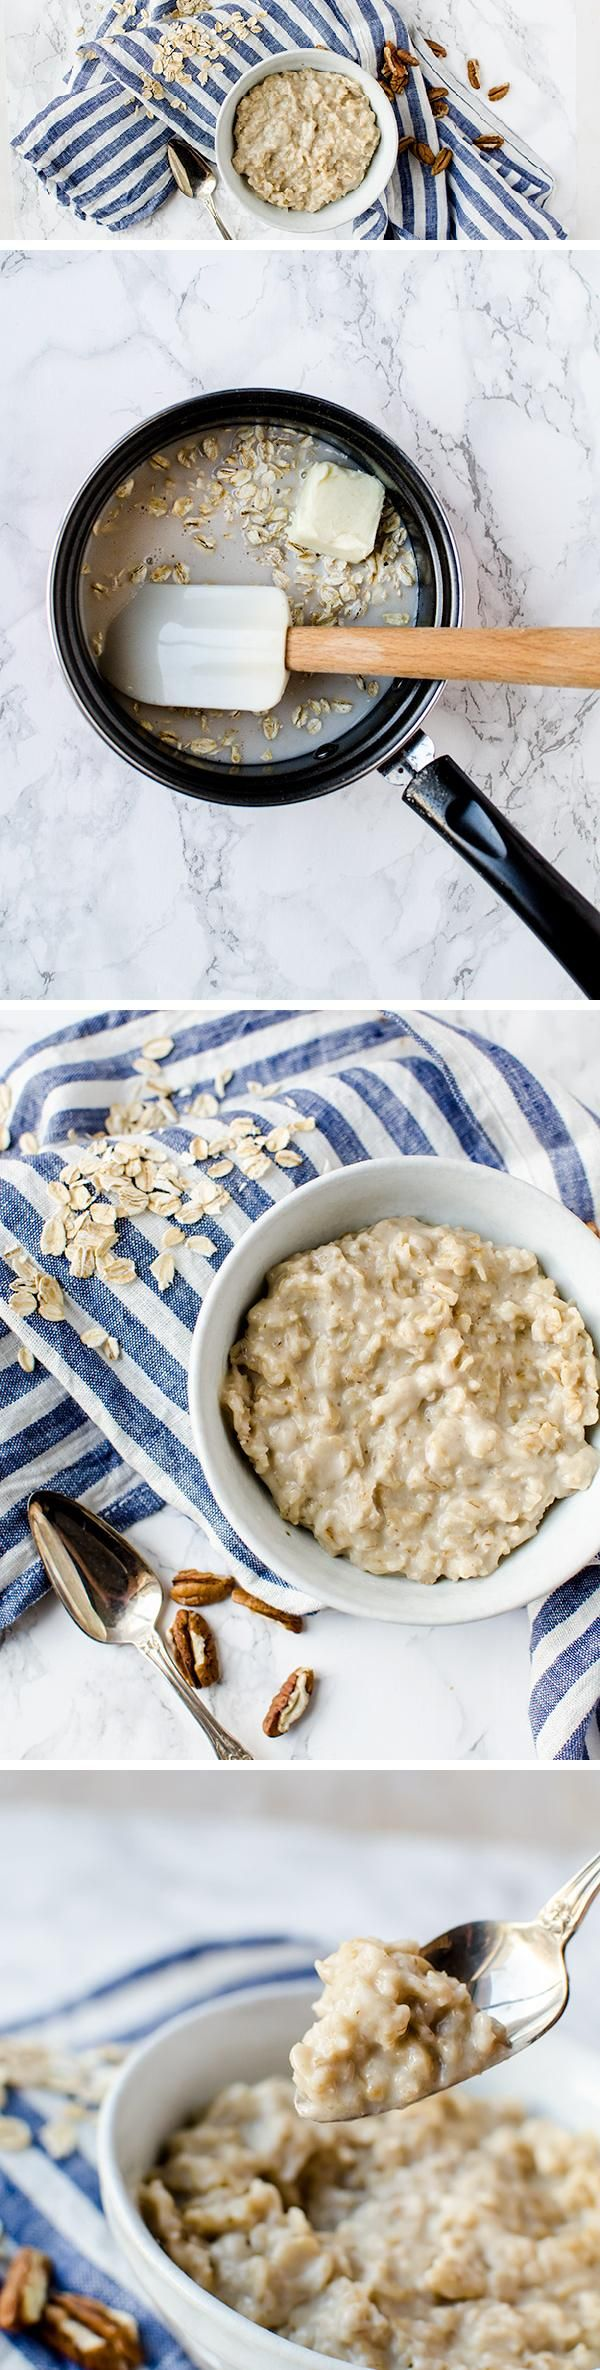 How to Make Oatmeal! A quick and easy recipe for making delicious OATMEAL every time!